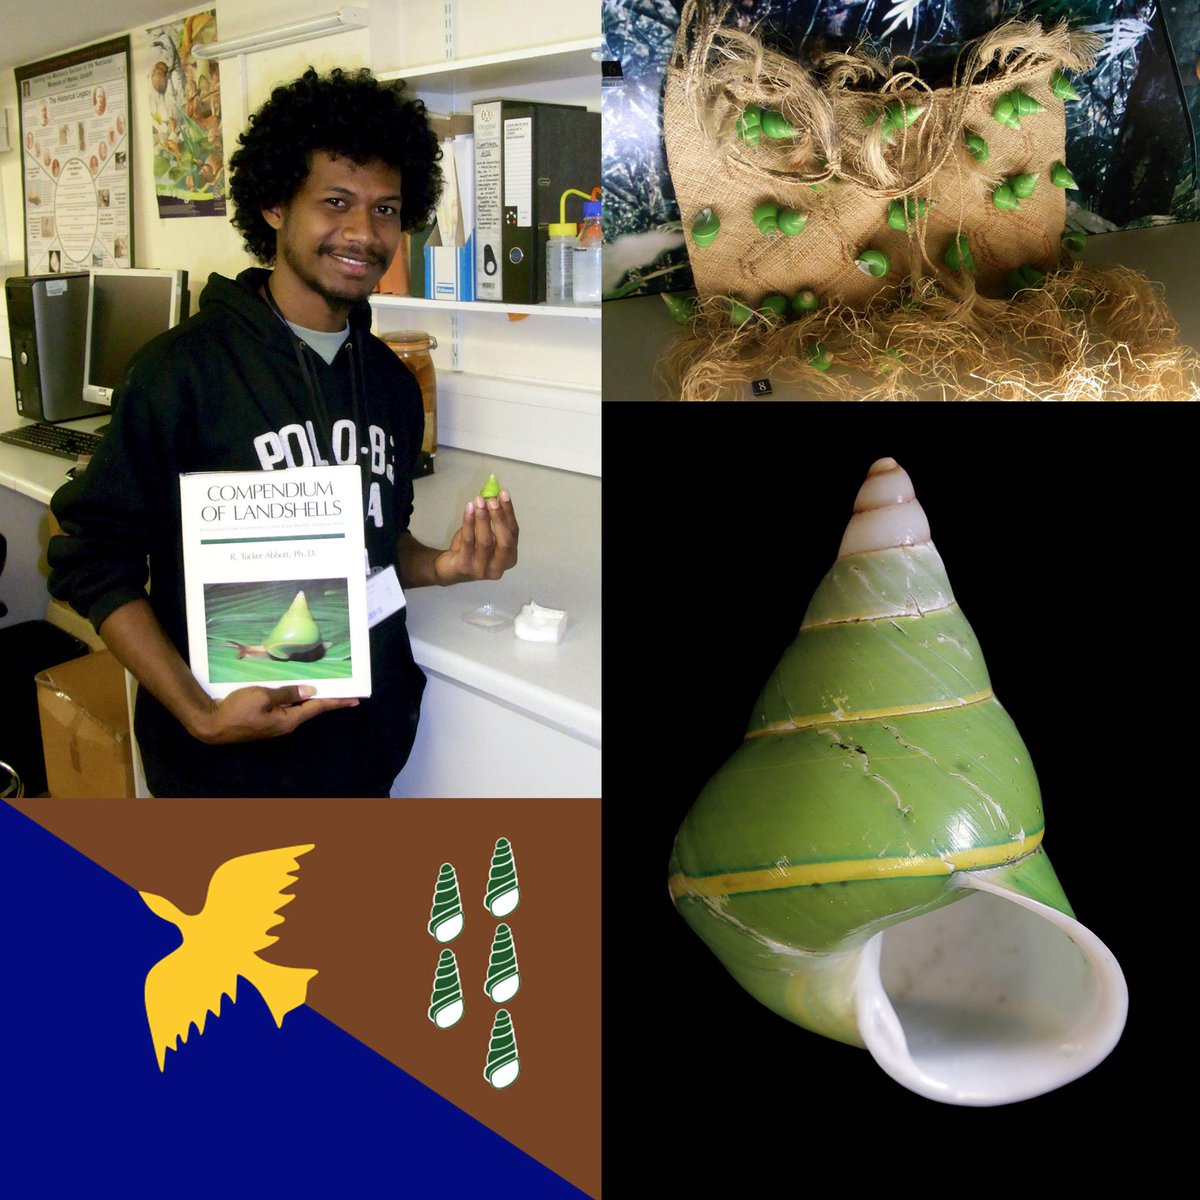 Papua New Guinean biologist Frank Philip at @AmgueddfaCymru with Manus Island Snail, famous on bags, books & a flag! http://t.co/CIYTPgxxSL